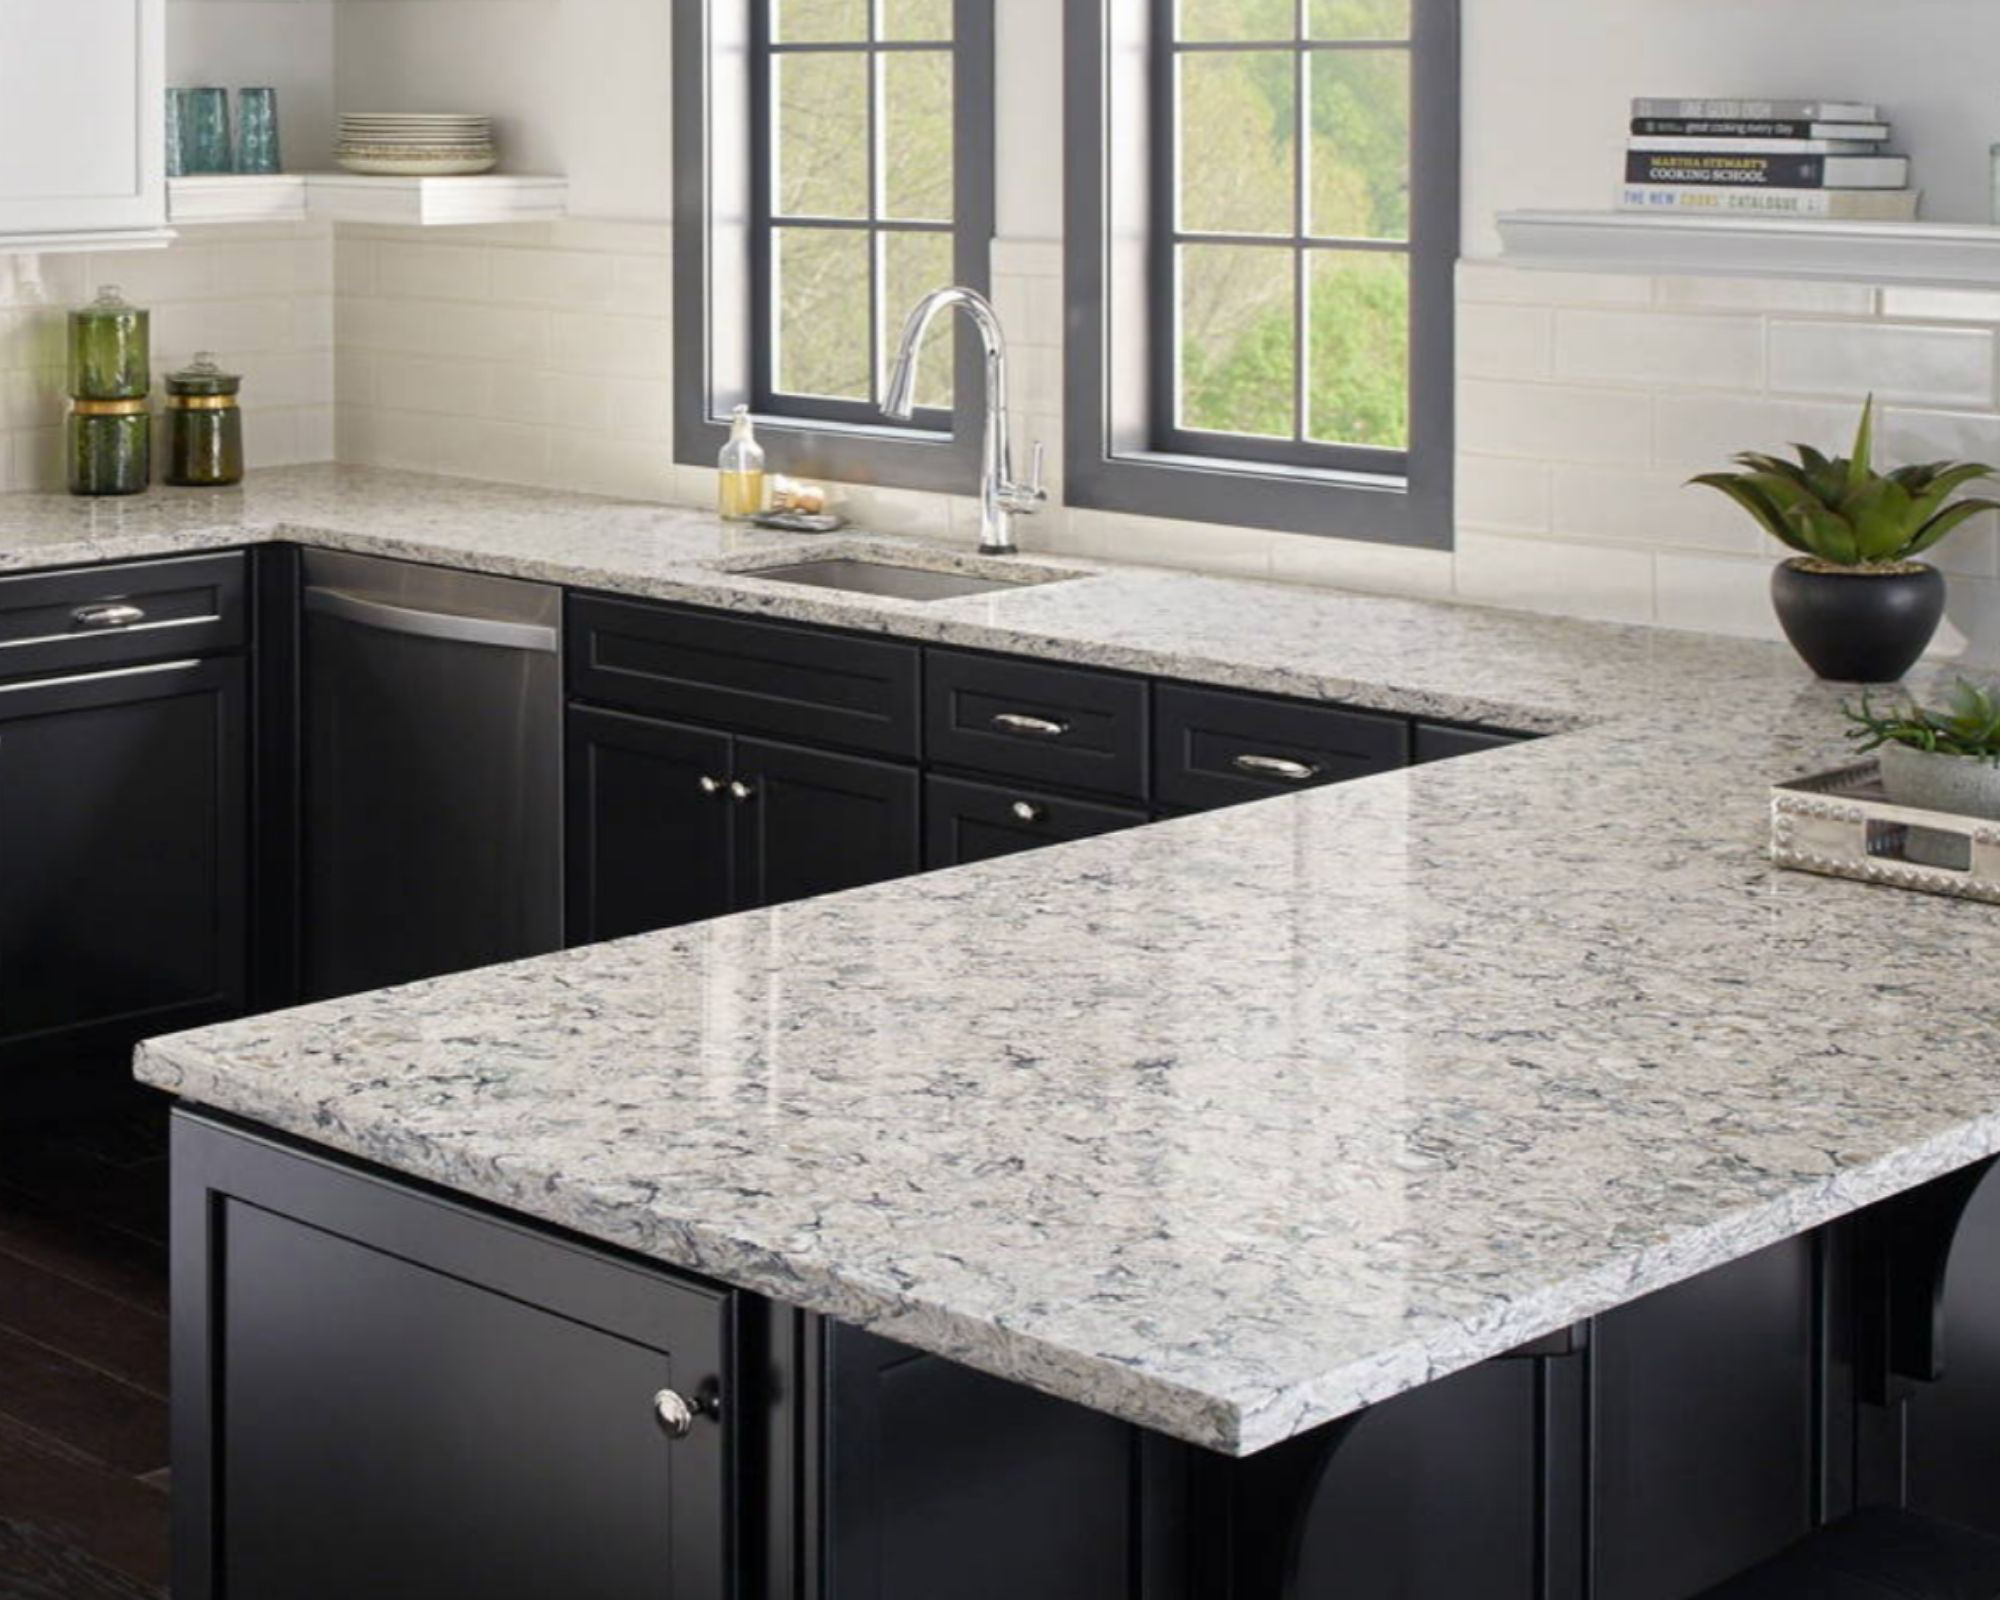 gorgous quartz kithen countertop